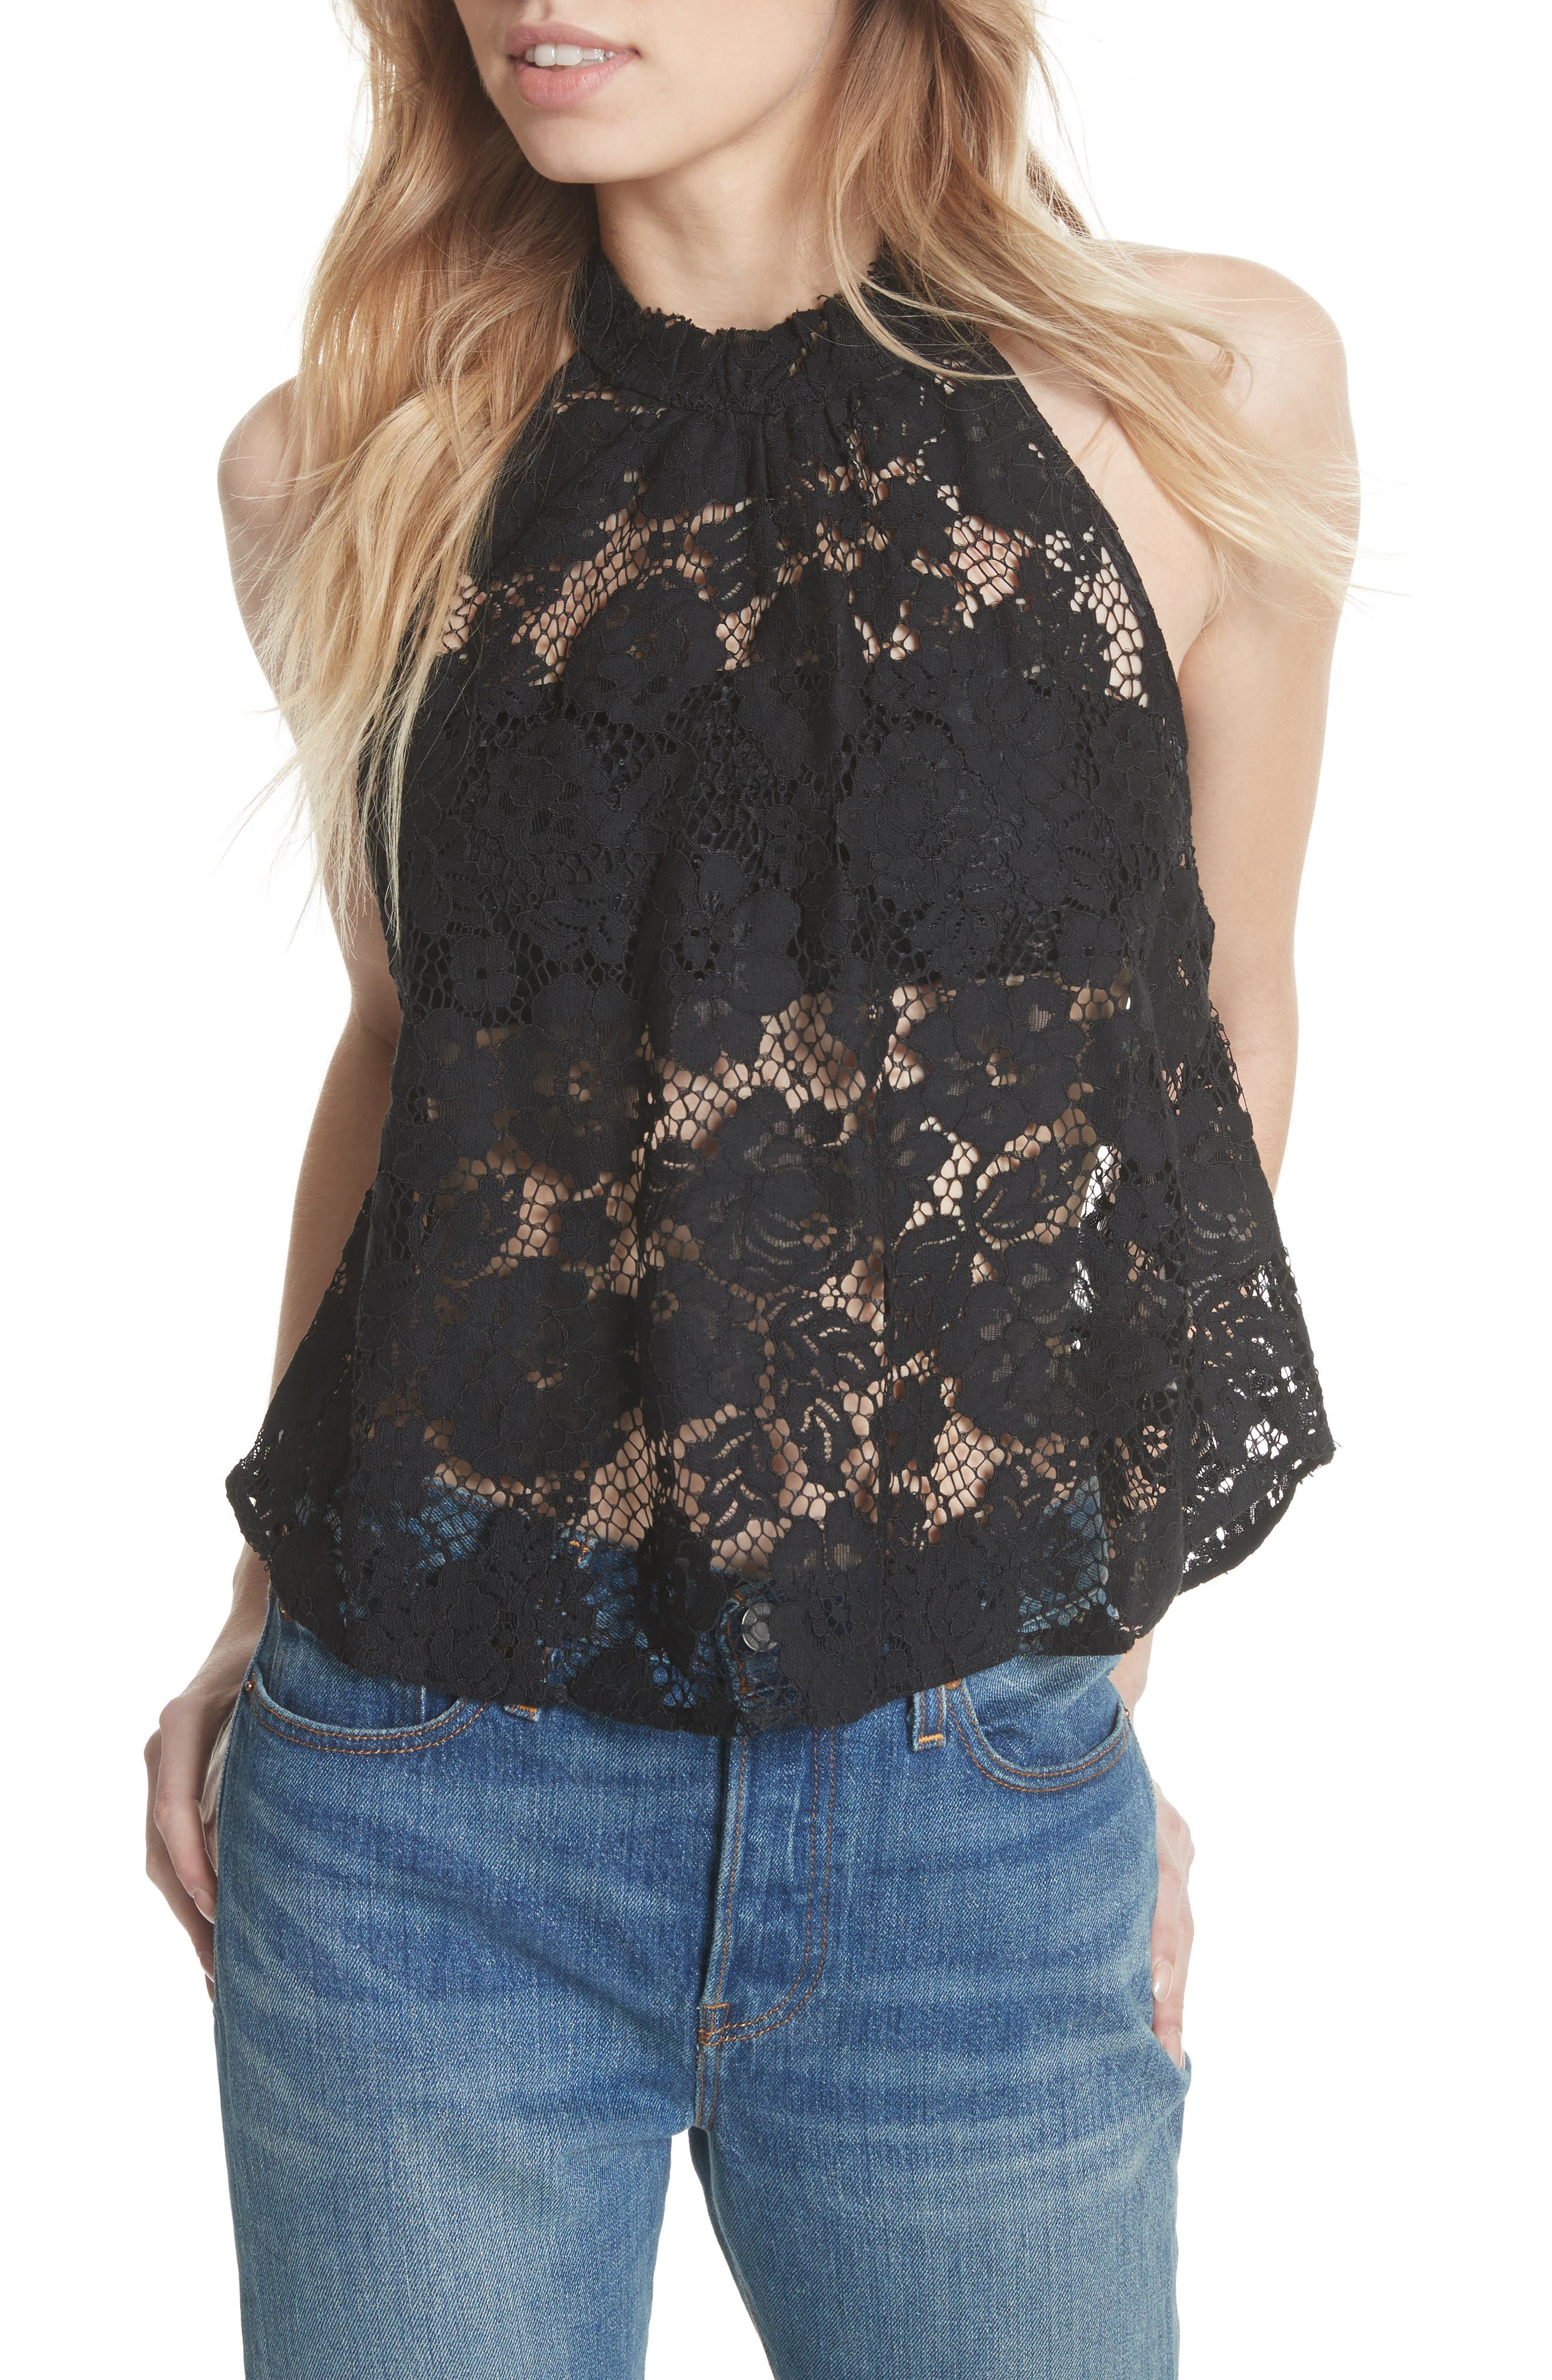 Sweet Meadow Dreams Lace Top,                             Main thumbnail 1, color,                             001